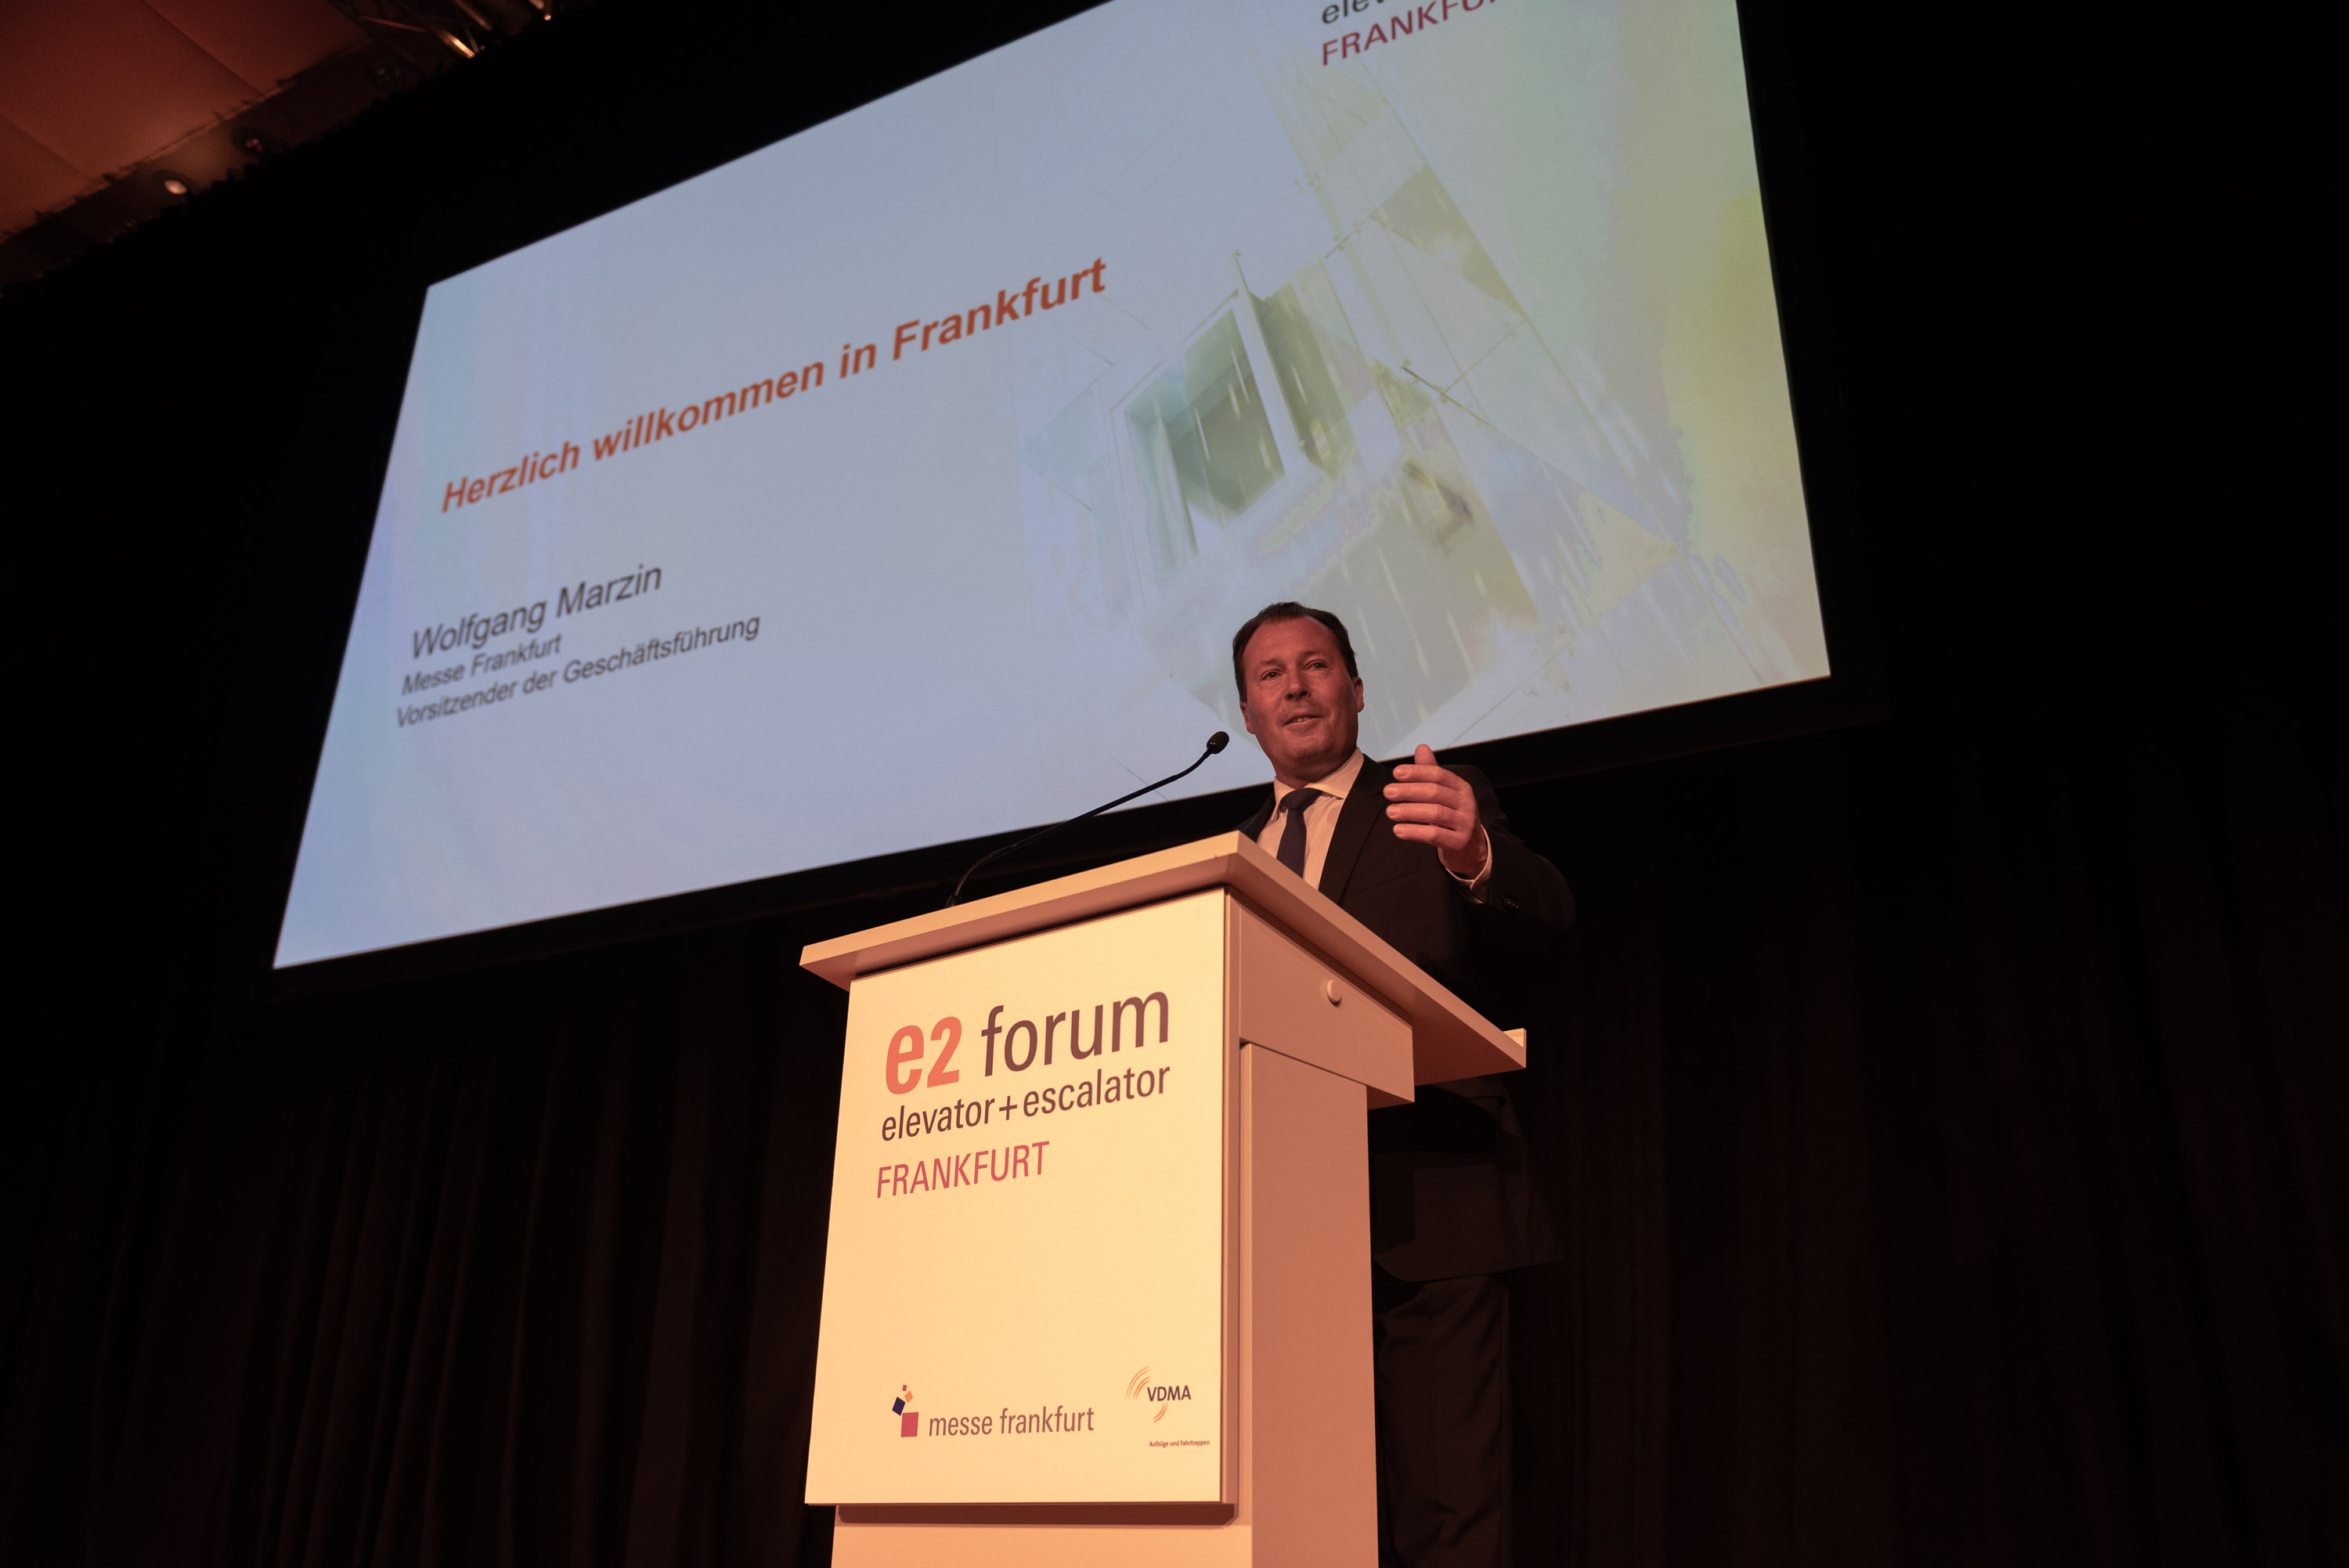 Wolfgang Marzin, President and Chief Executive Officer (CEO) of Messe Frankfurt GmbH